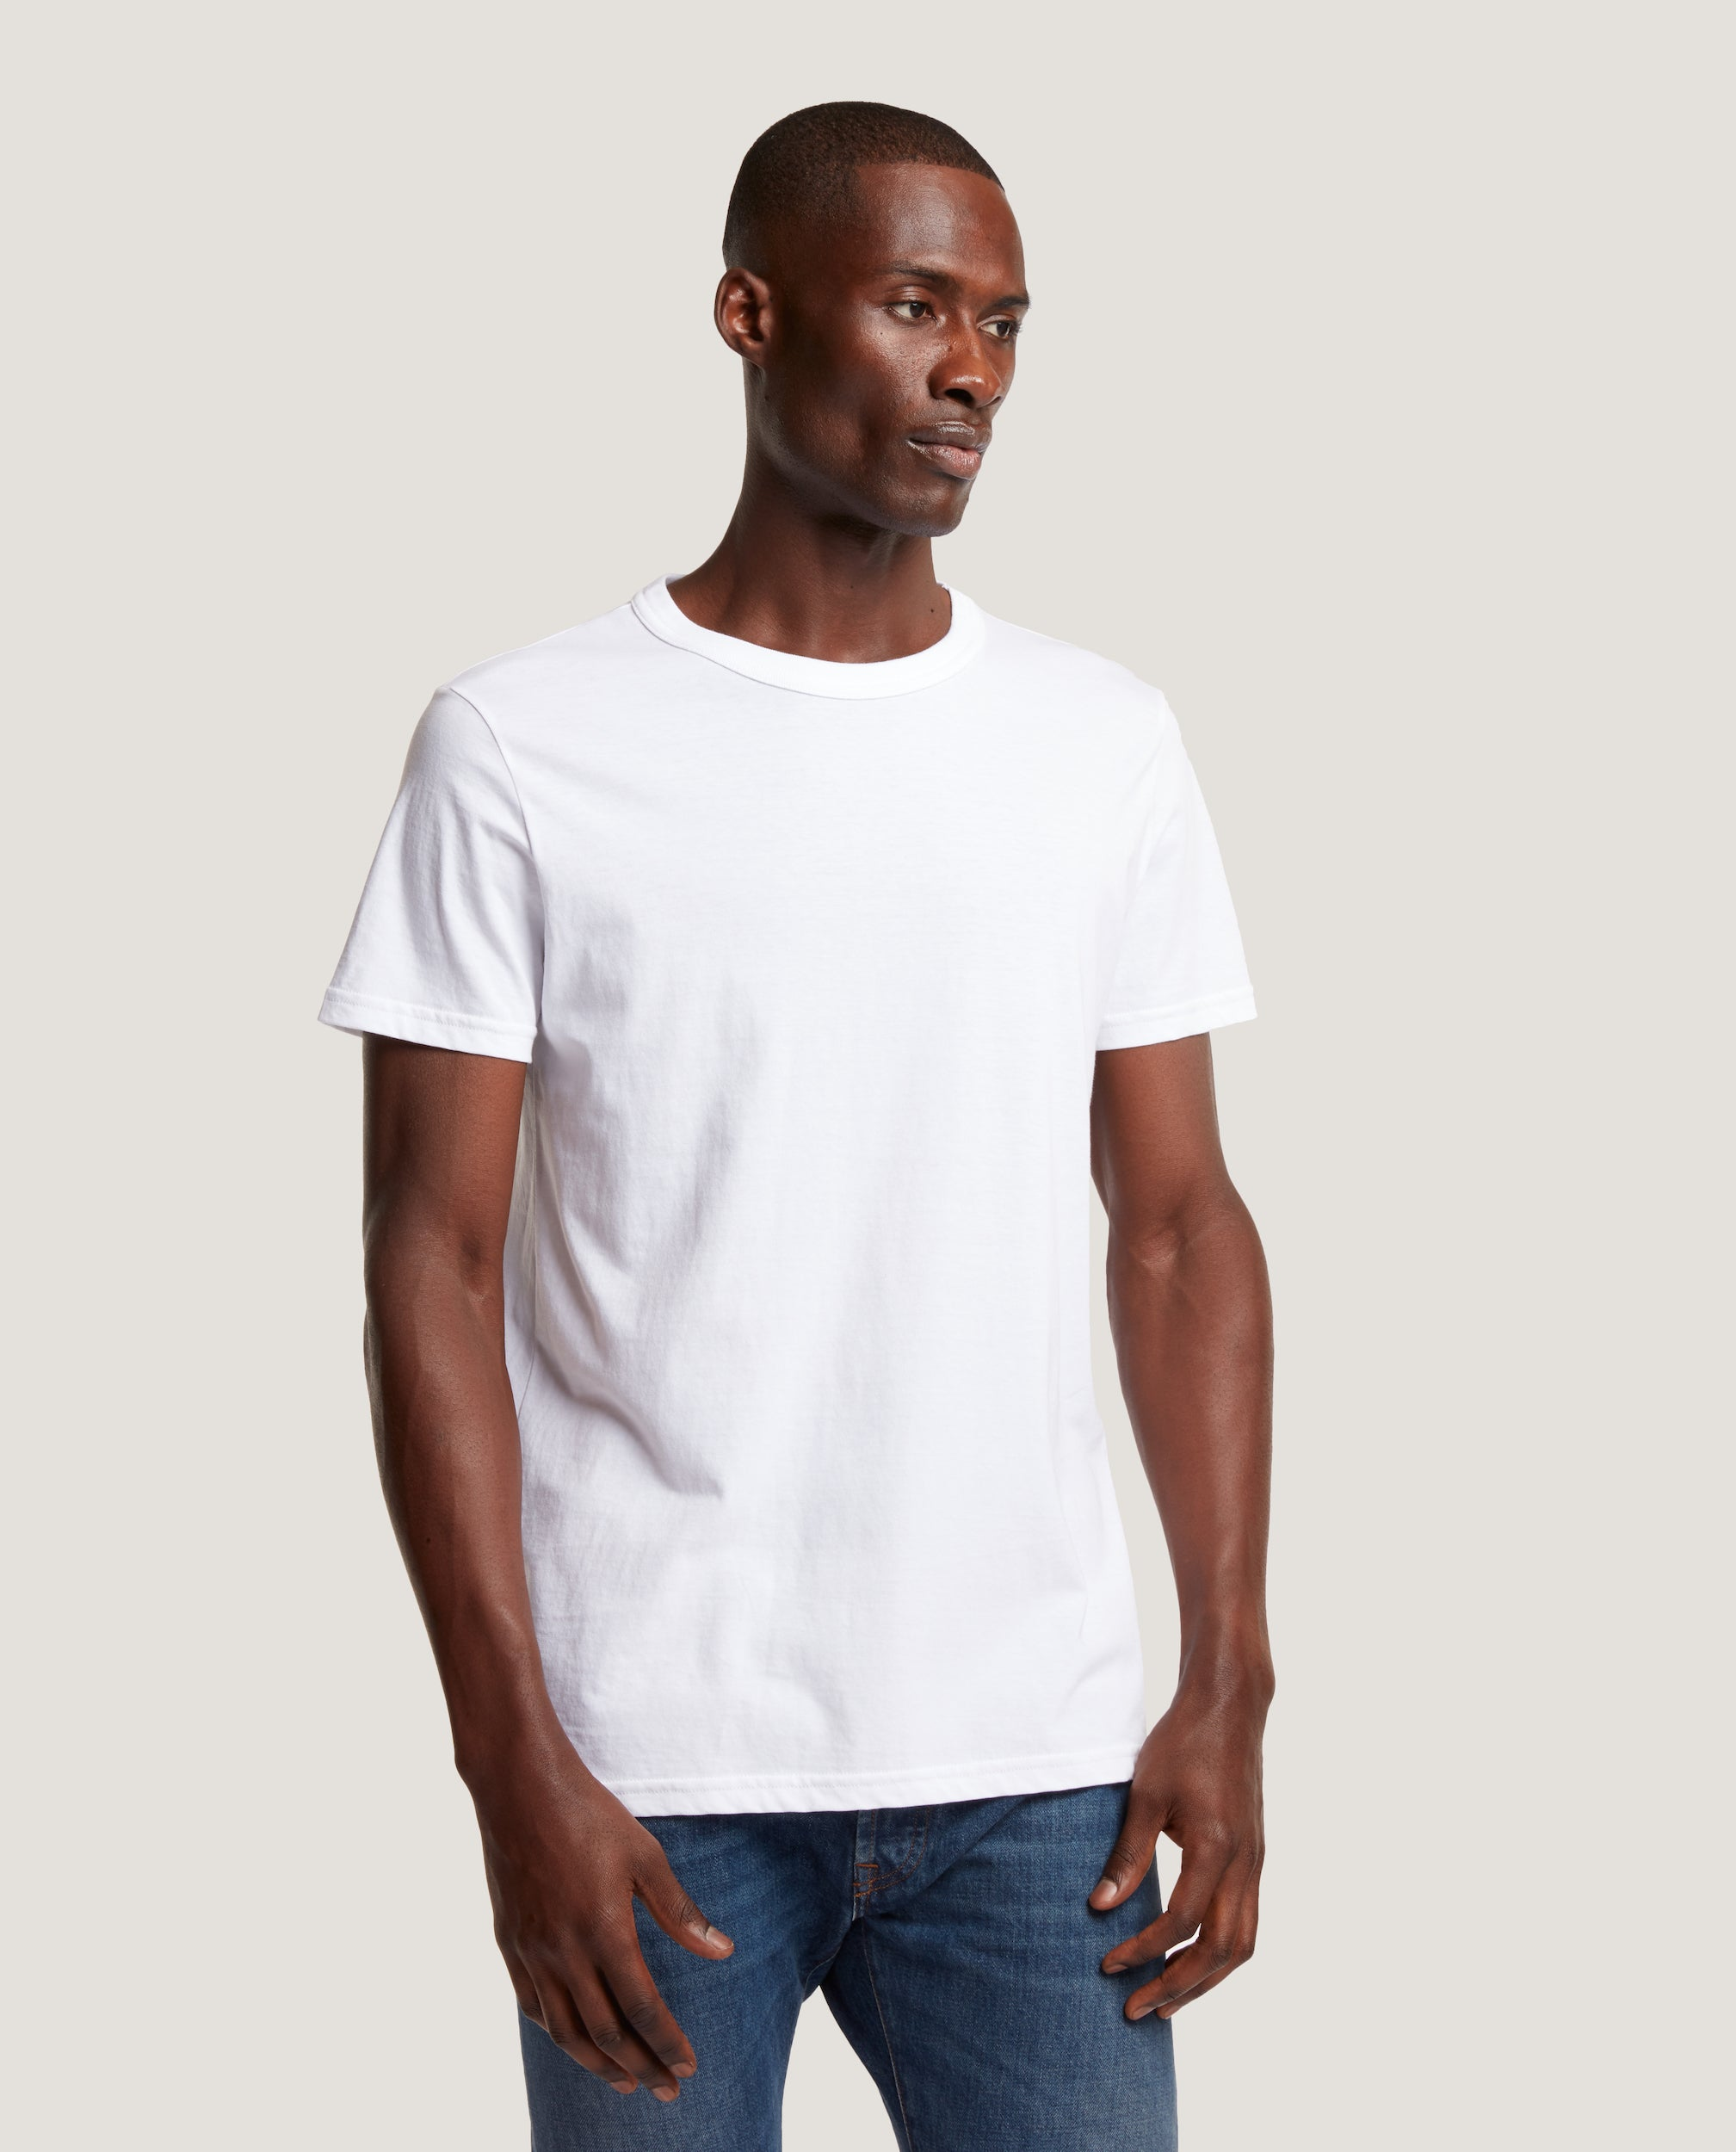 LUCAS High Rib Collar T-shirt | Cotton | White